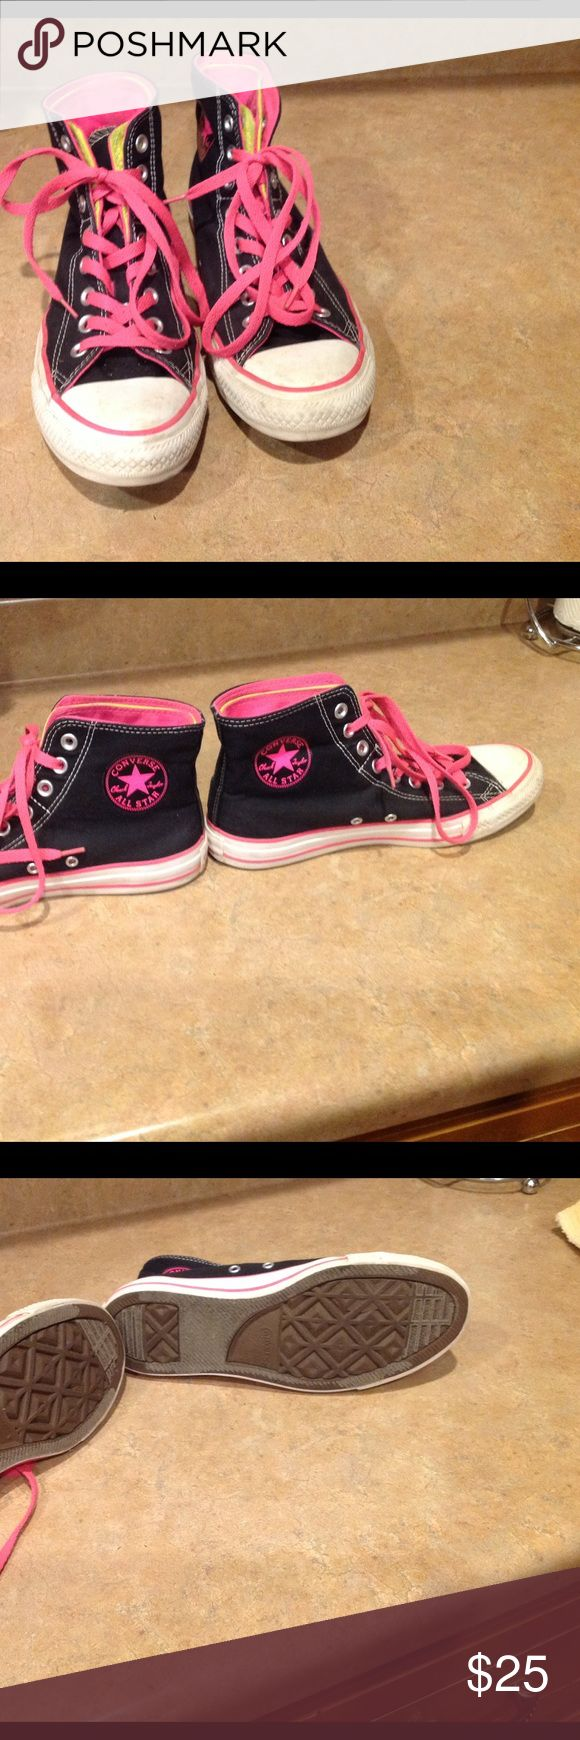 Converse All Star shoes, women's size 9, men's 7 Hot pink and black Converse Shoes